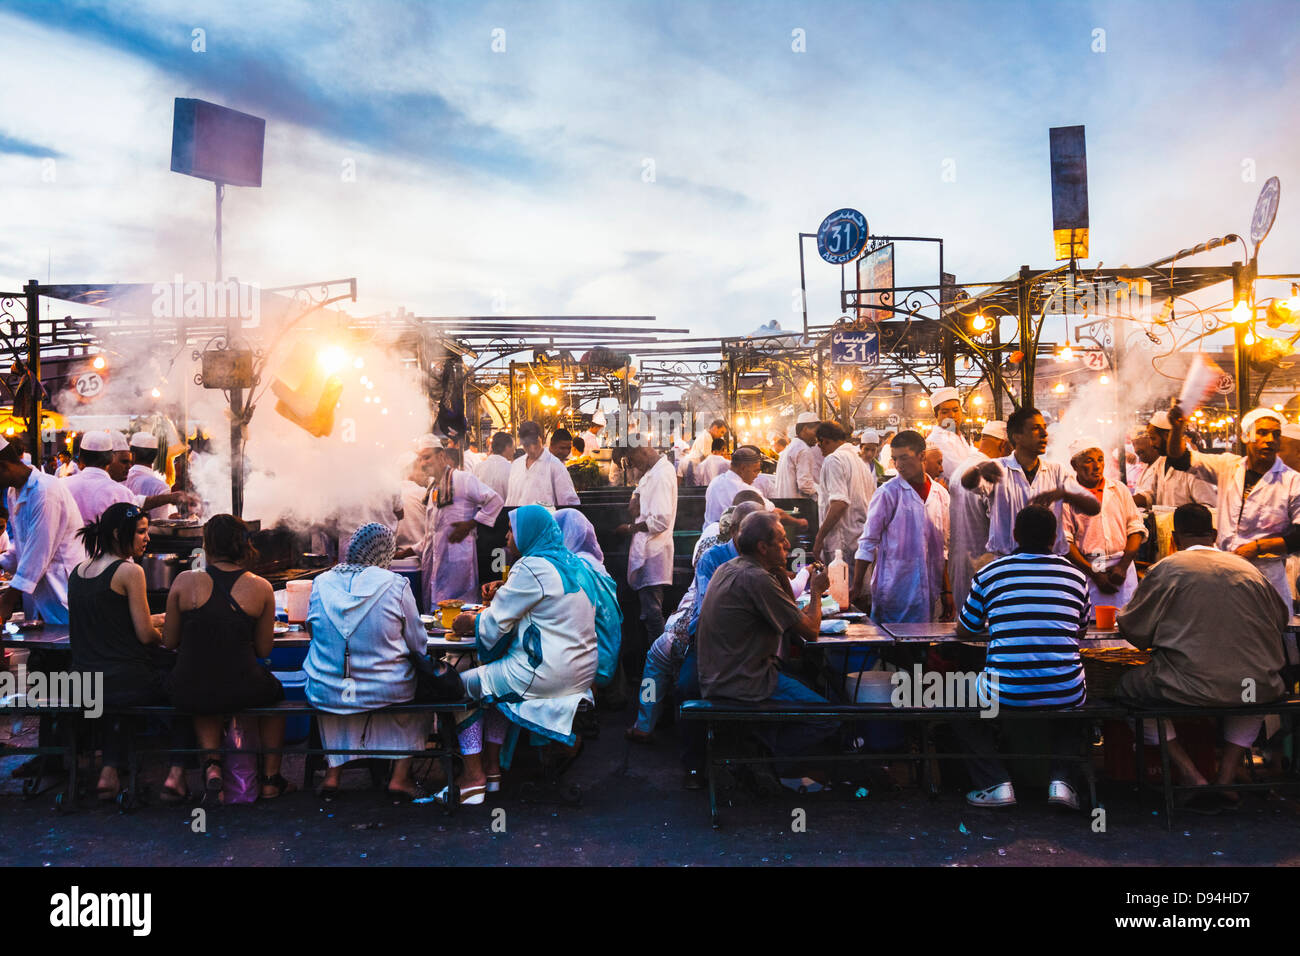 Djemaa el Fna square. People dining at the food stalls at dusk. Marrakesh, Morocco Stock Photo